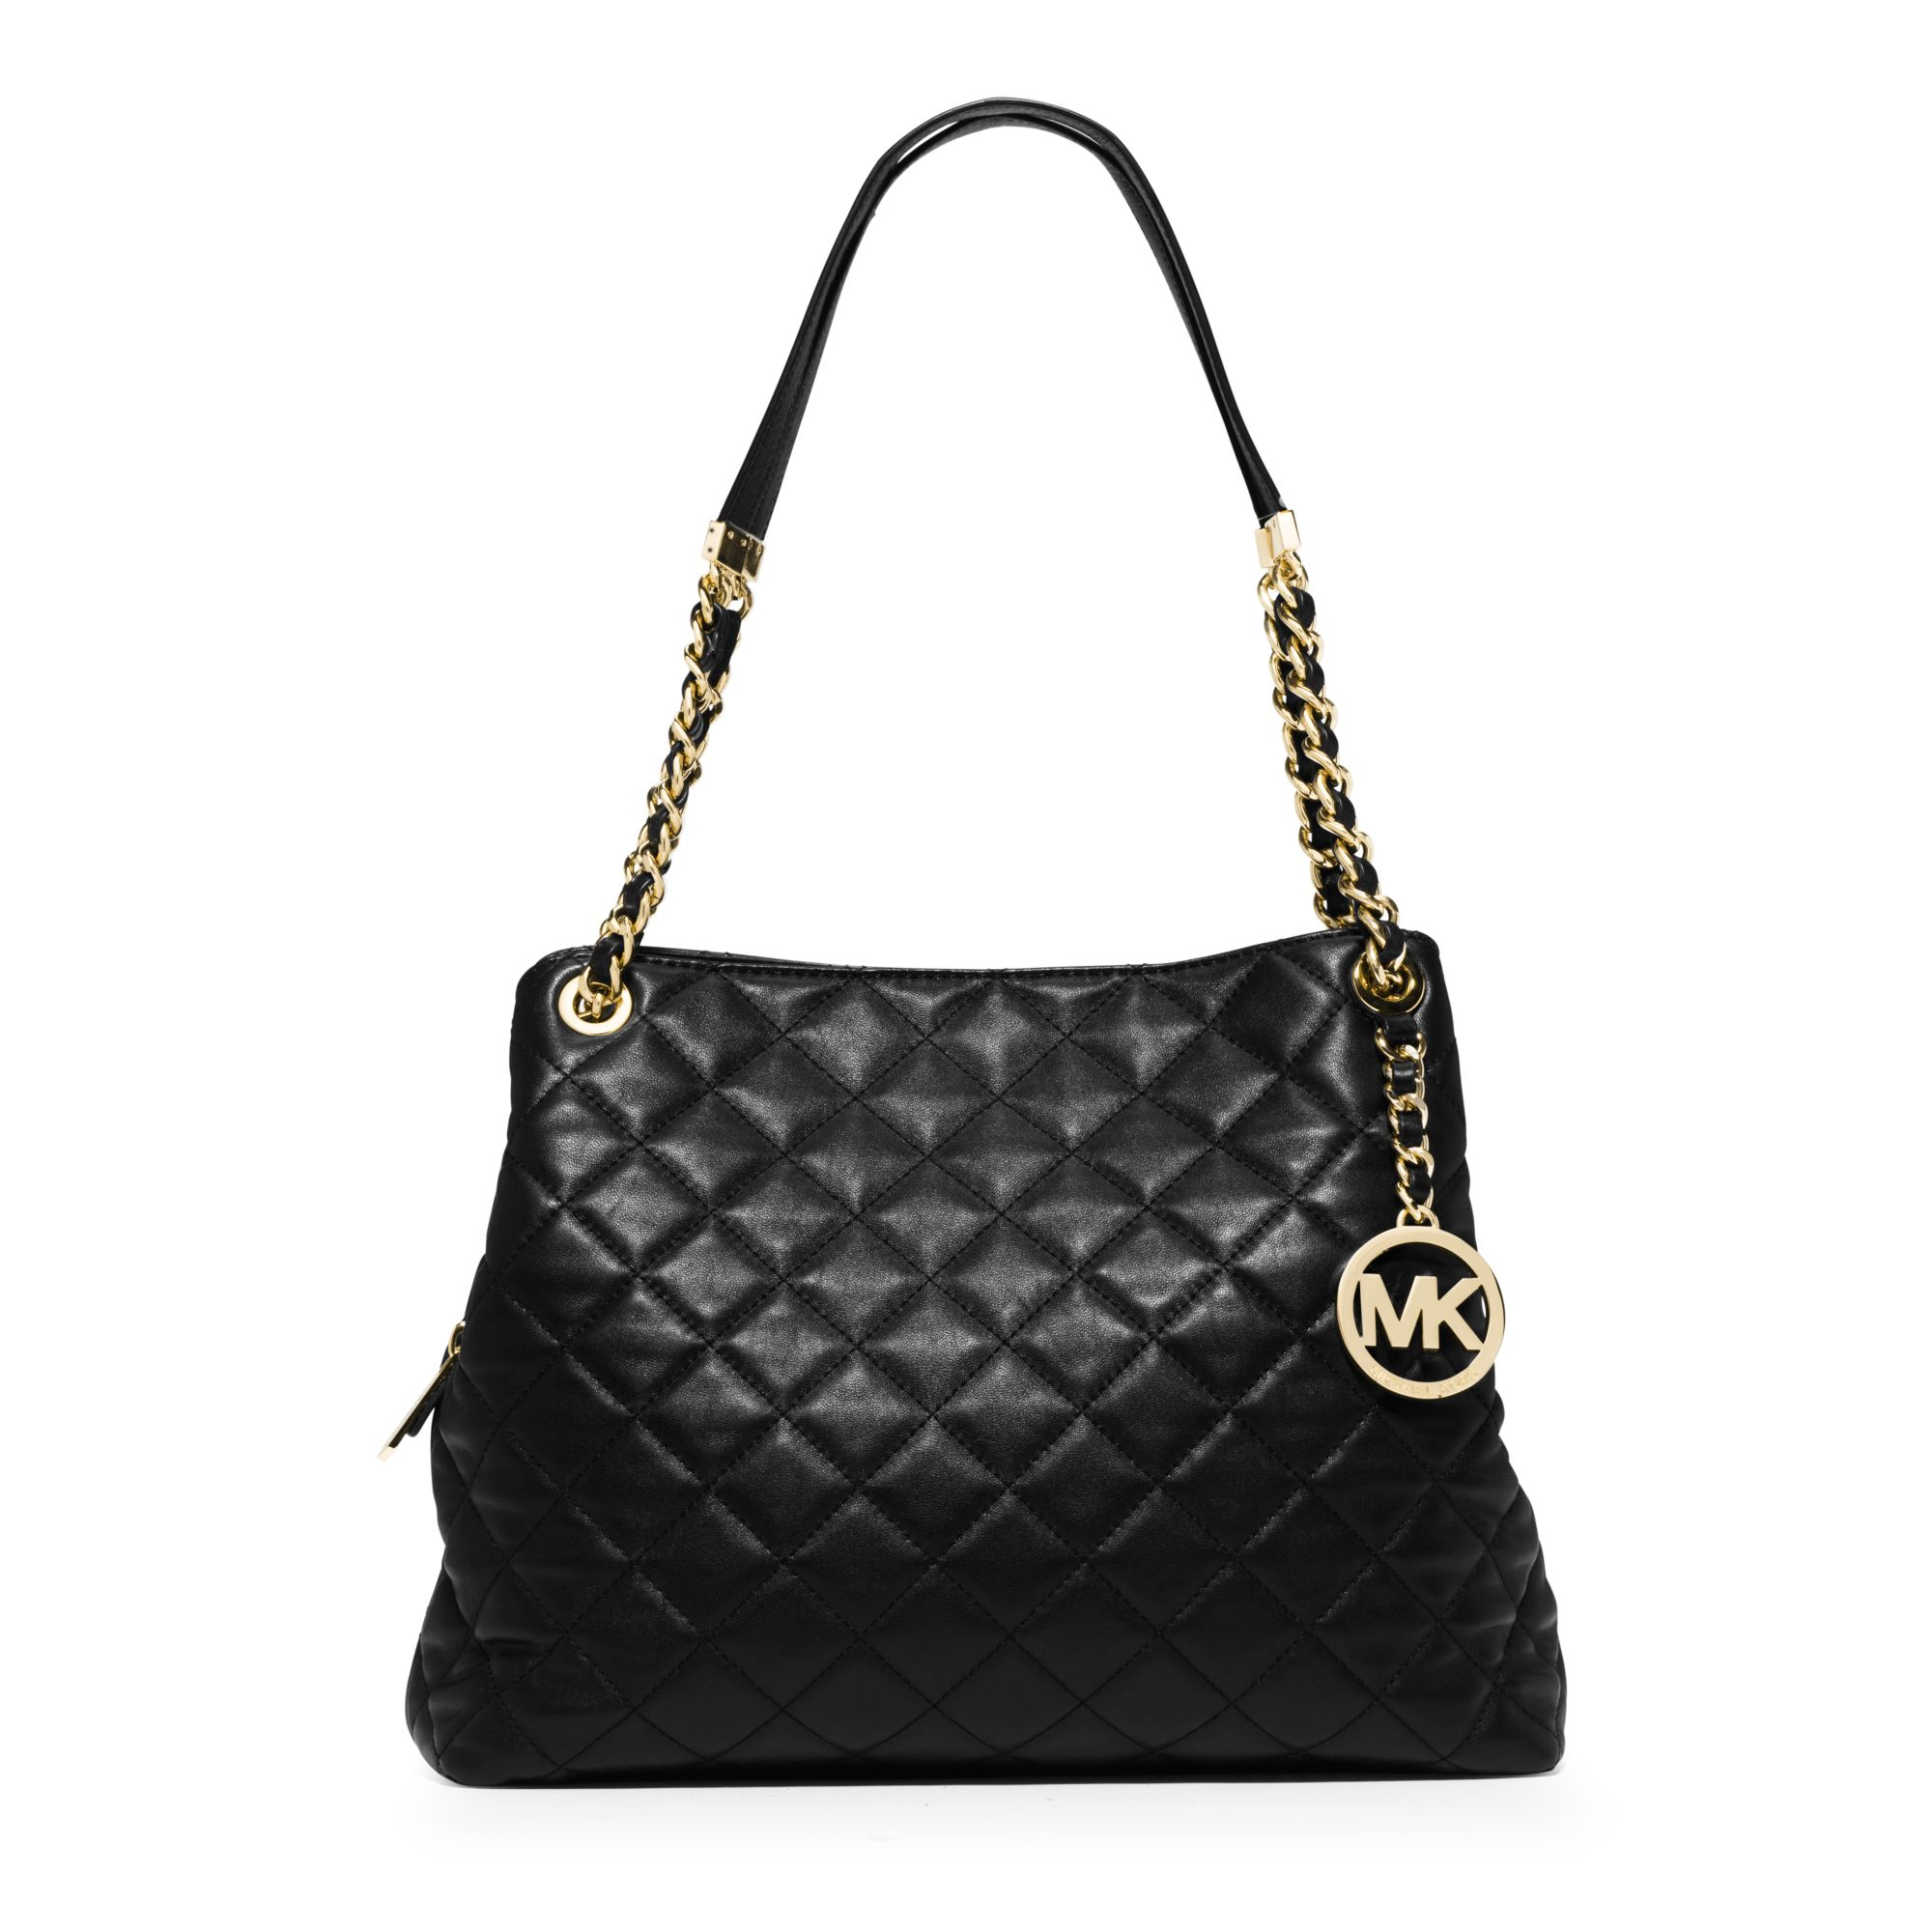 michael kors susannah large quilted leather shoulder bag. Black Bedroom Furniture Sets. Home Design Ideas